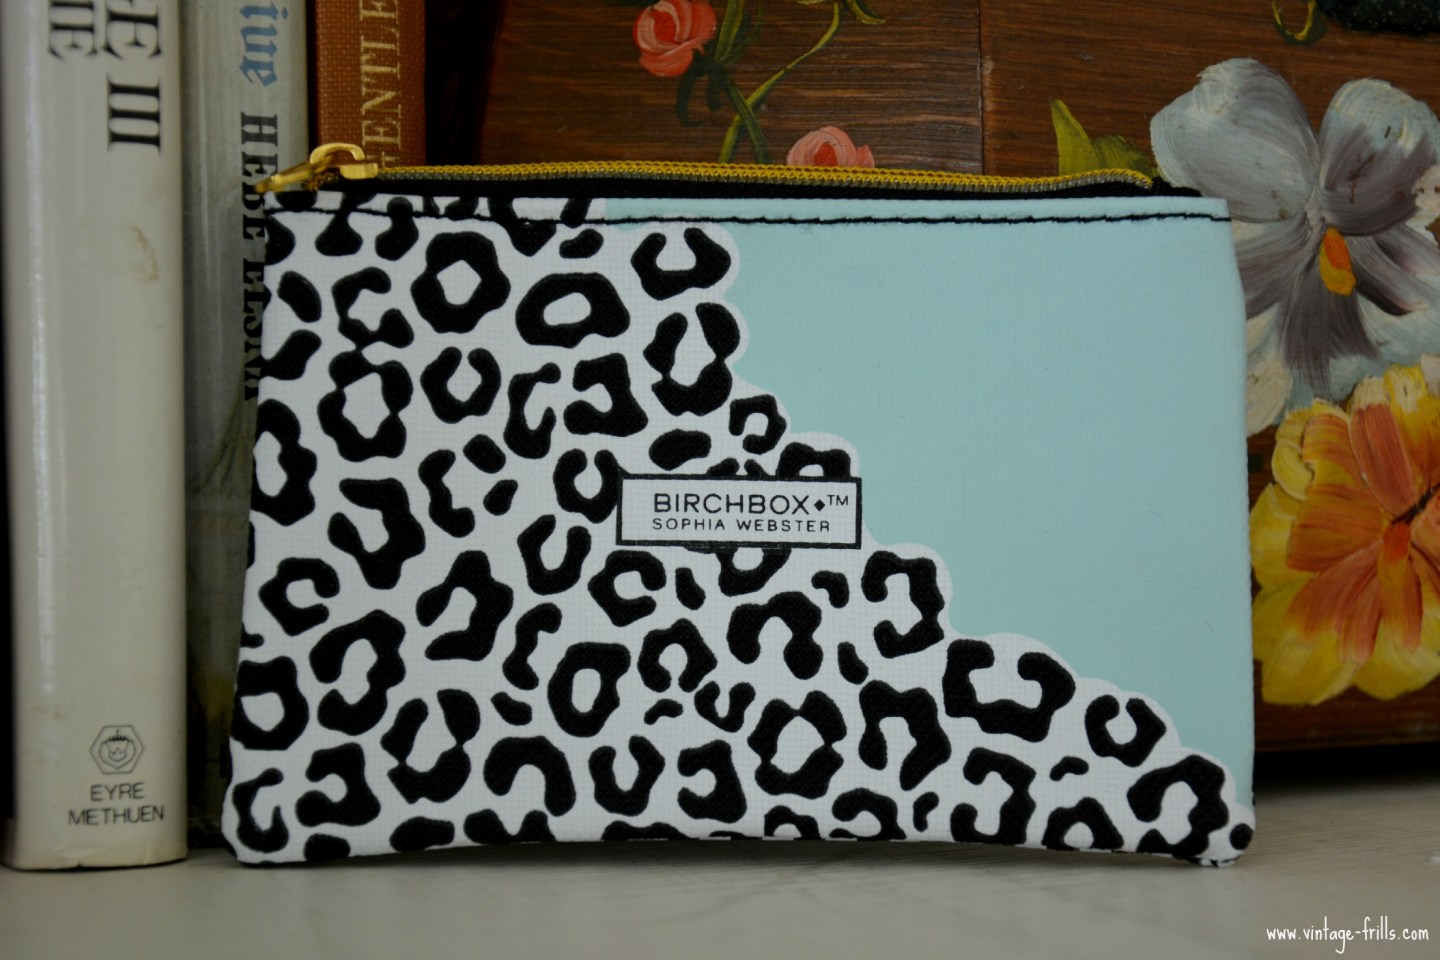 Birchbox Sophie Webster Purse